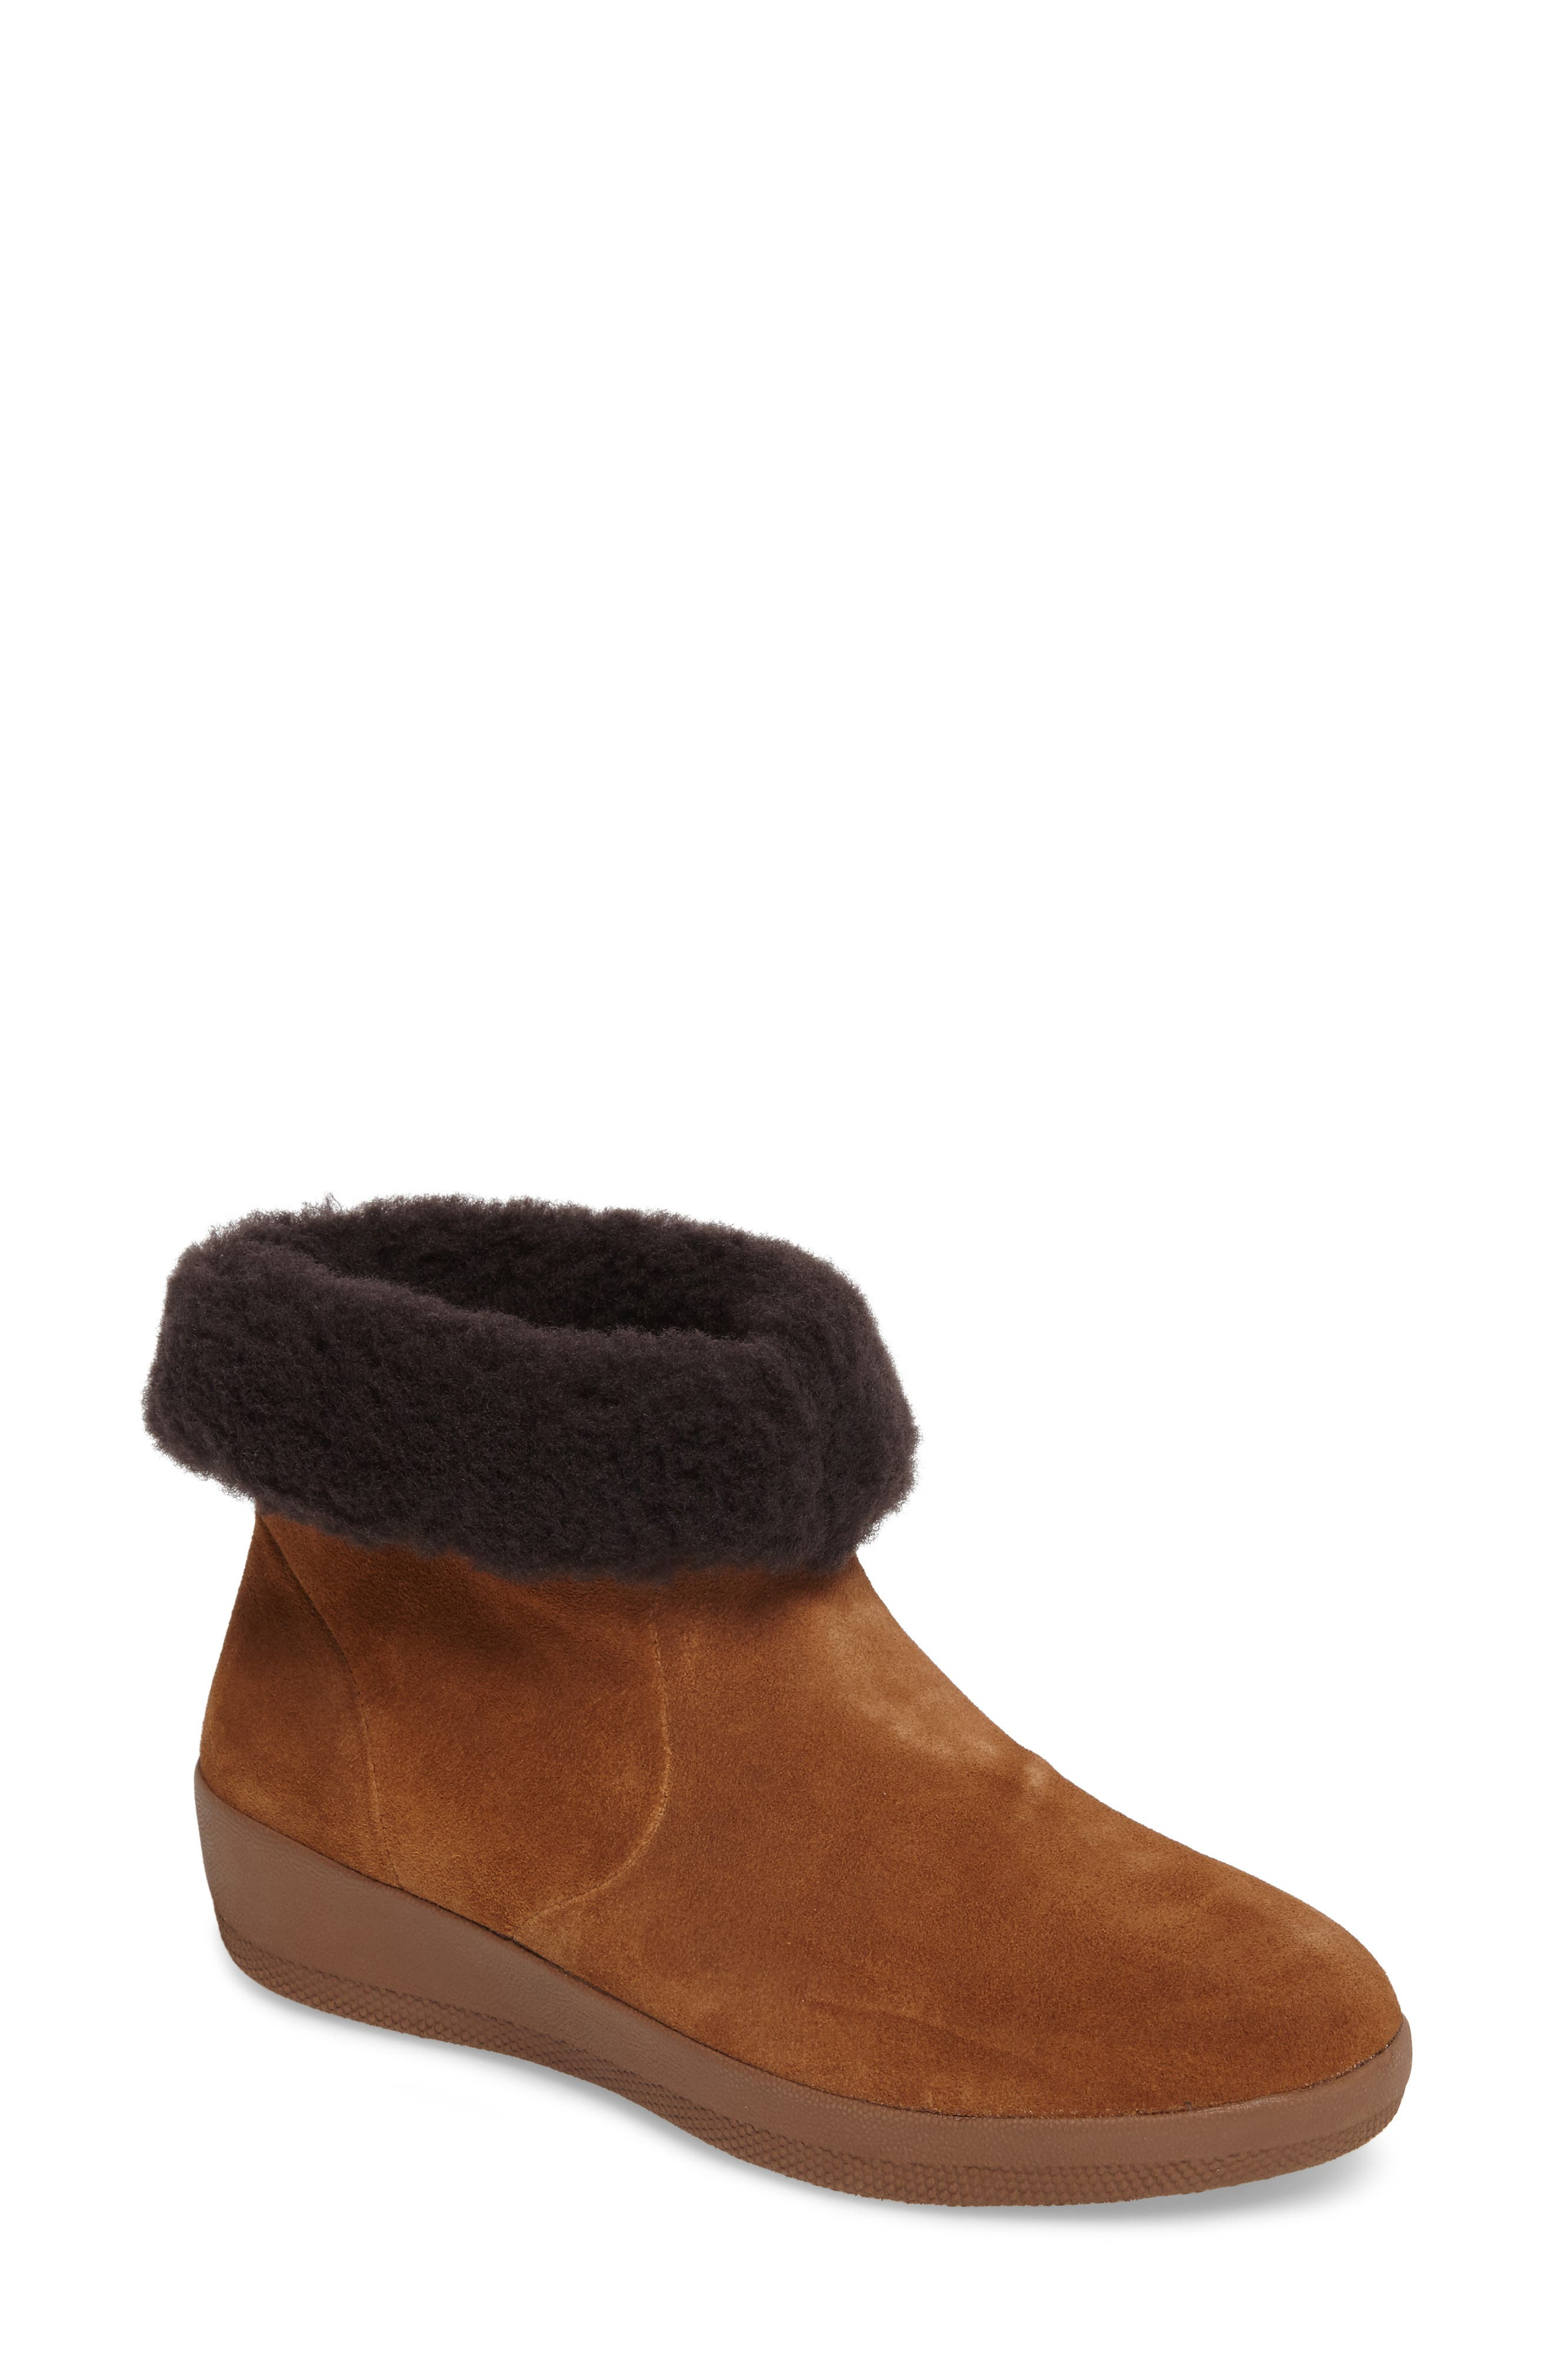 Main Image - FitFlop Skate Genuine Shearling Cuff Boot (Women)